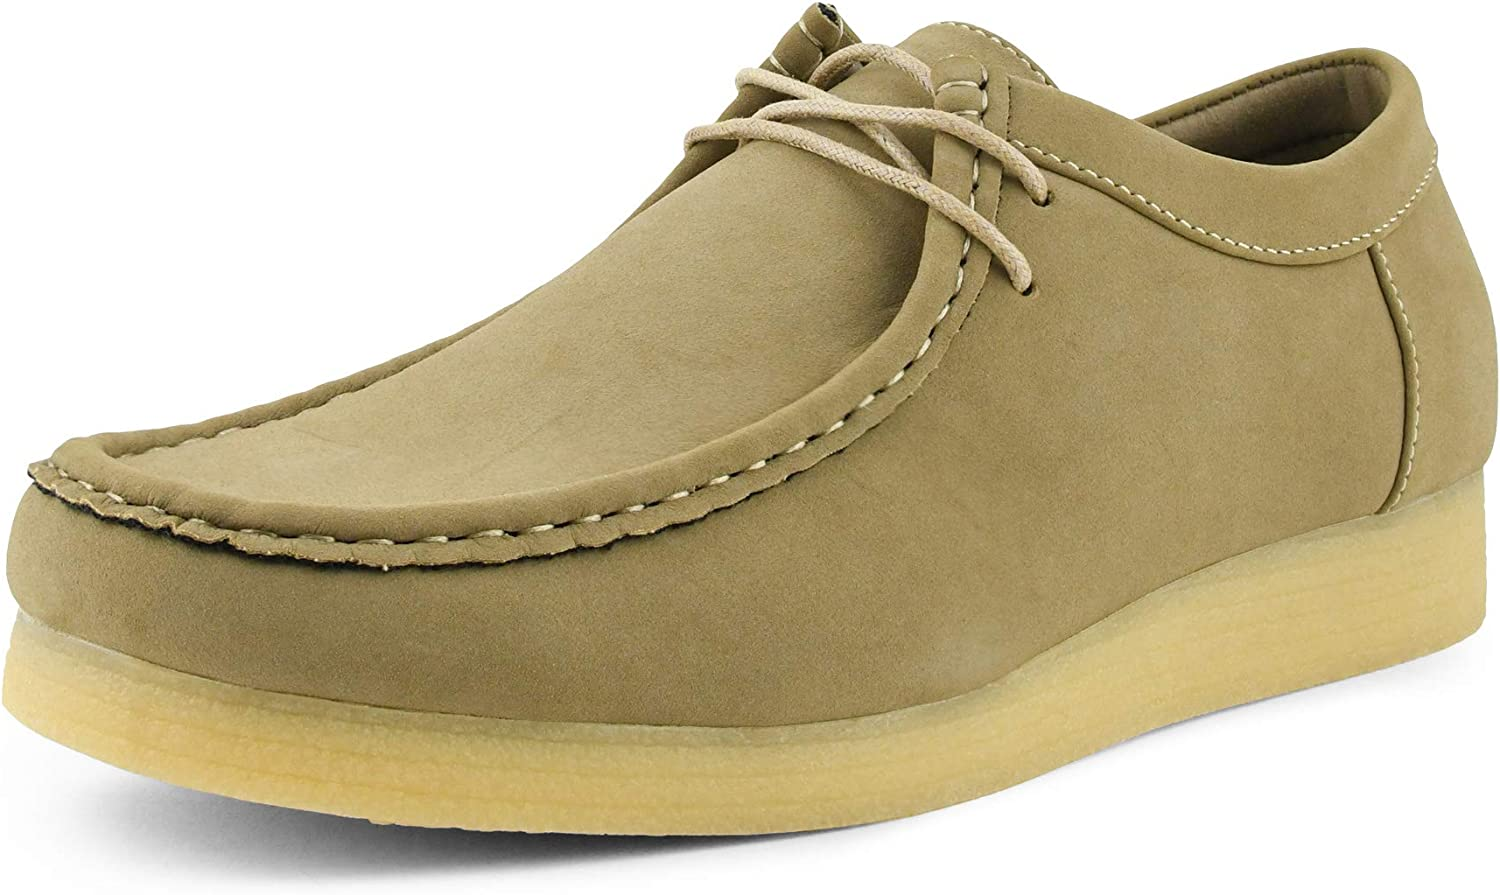 Lace Up Manmade Suede Moc Toe Chukka Boots Crepe Rubber Sole Casual Boots Low - Mens Low Top Casual Boots Mens Moc Toe Chukka Boots Amali Jason2